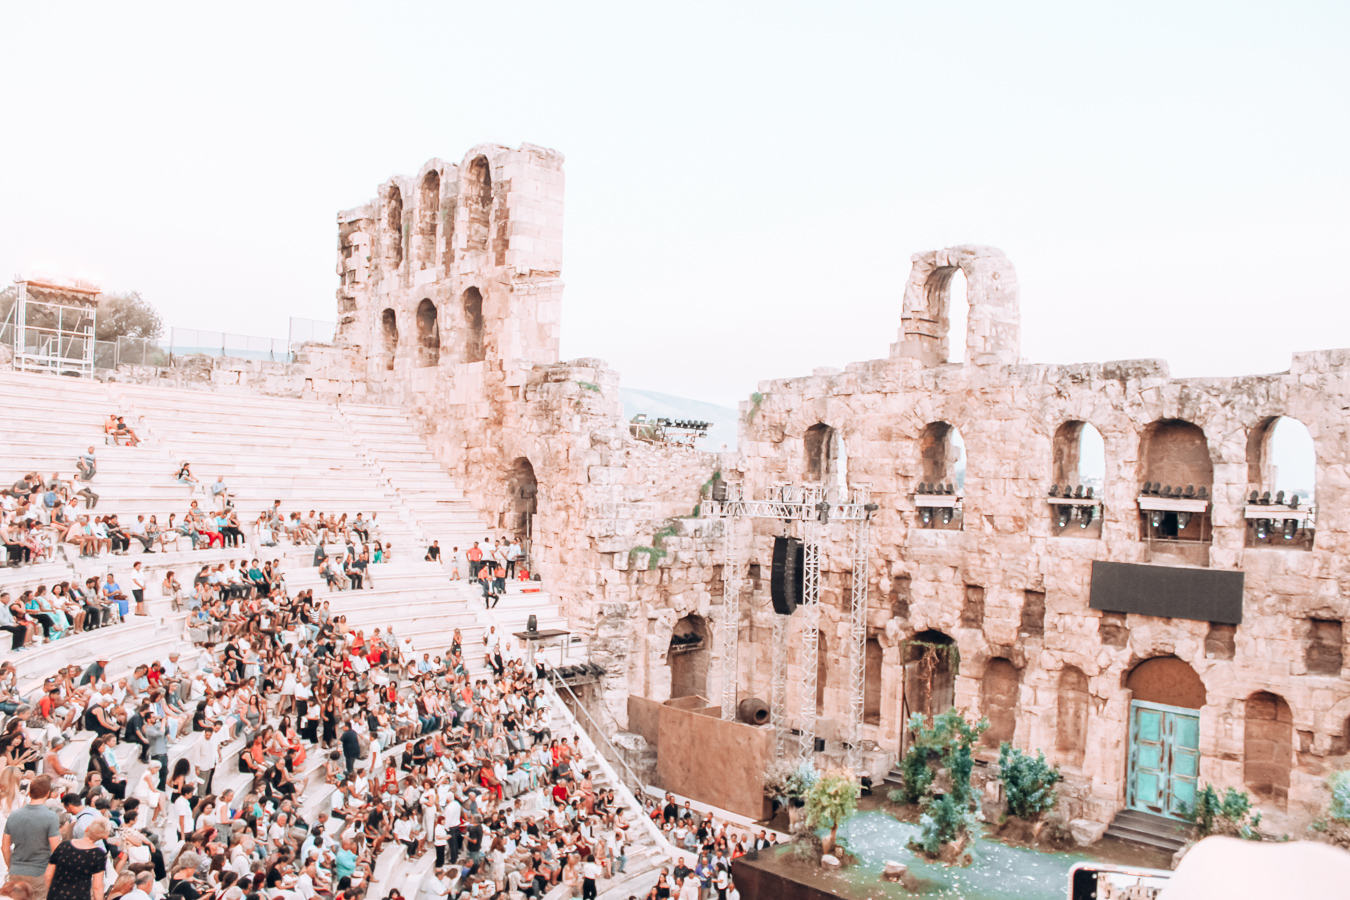 People at the Odeon of Herodius Atticus